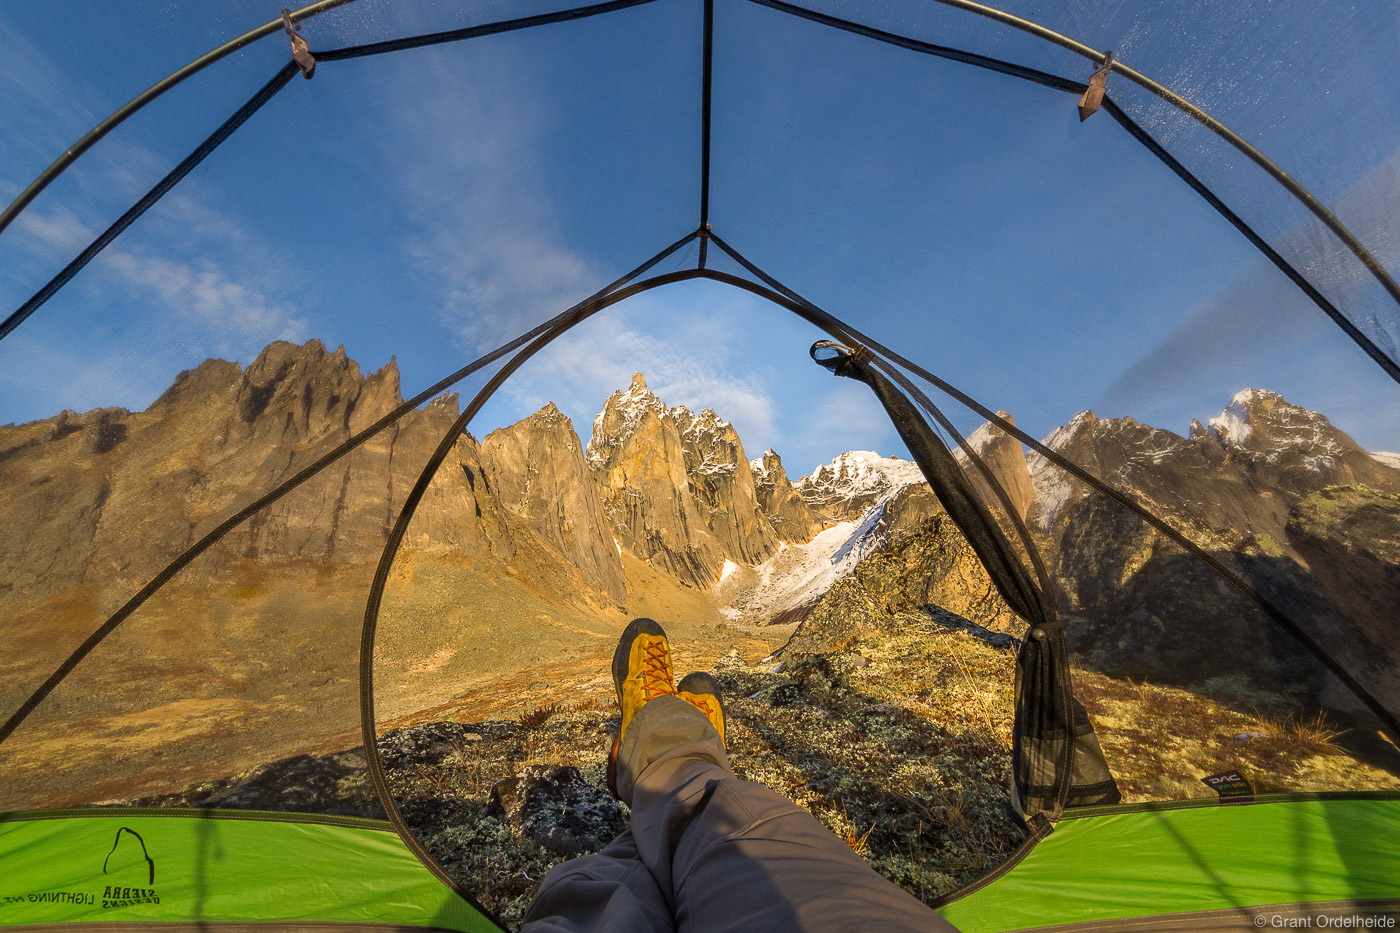 room, view, tombstone, territorial, park, yukon, canada, backpacker, enjoying, mount, monolith, tent, photo